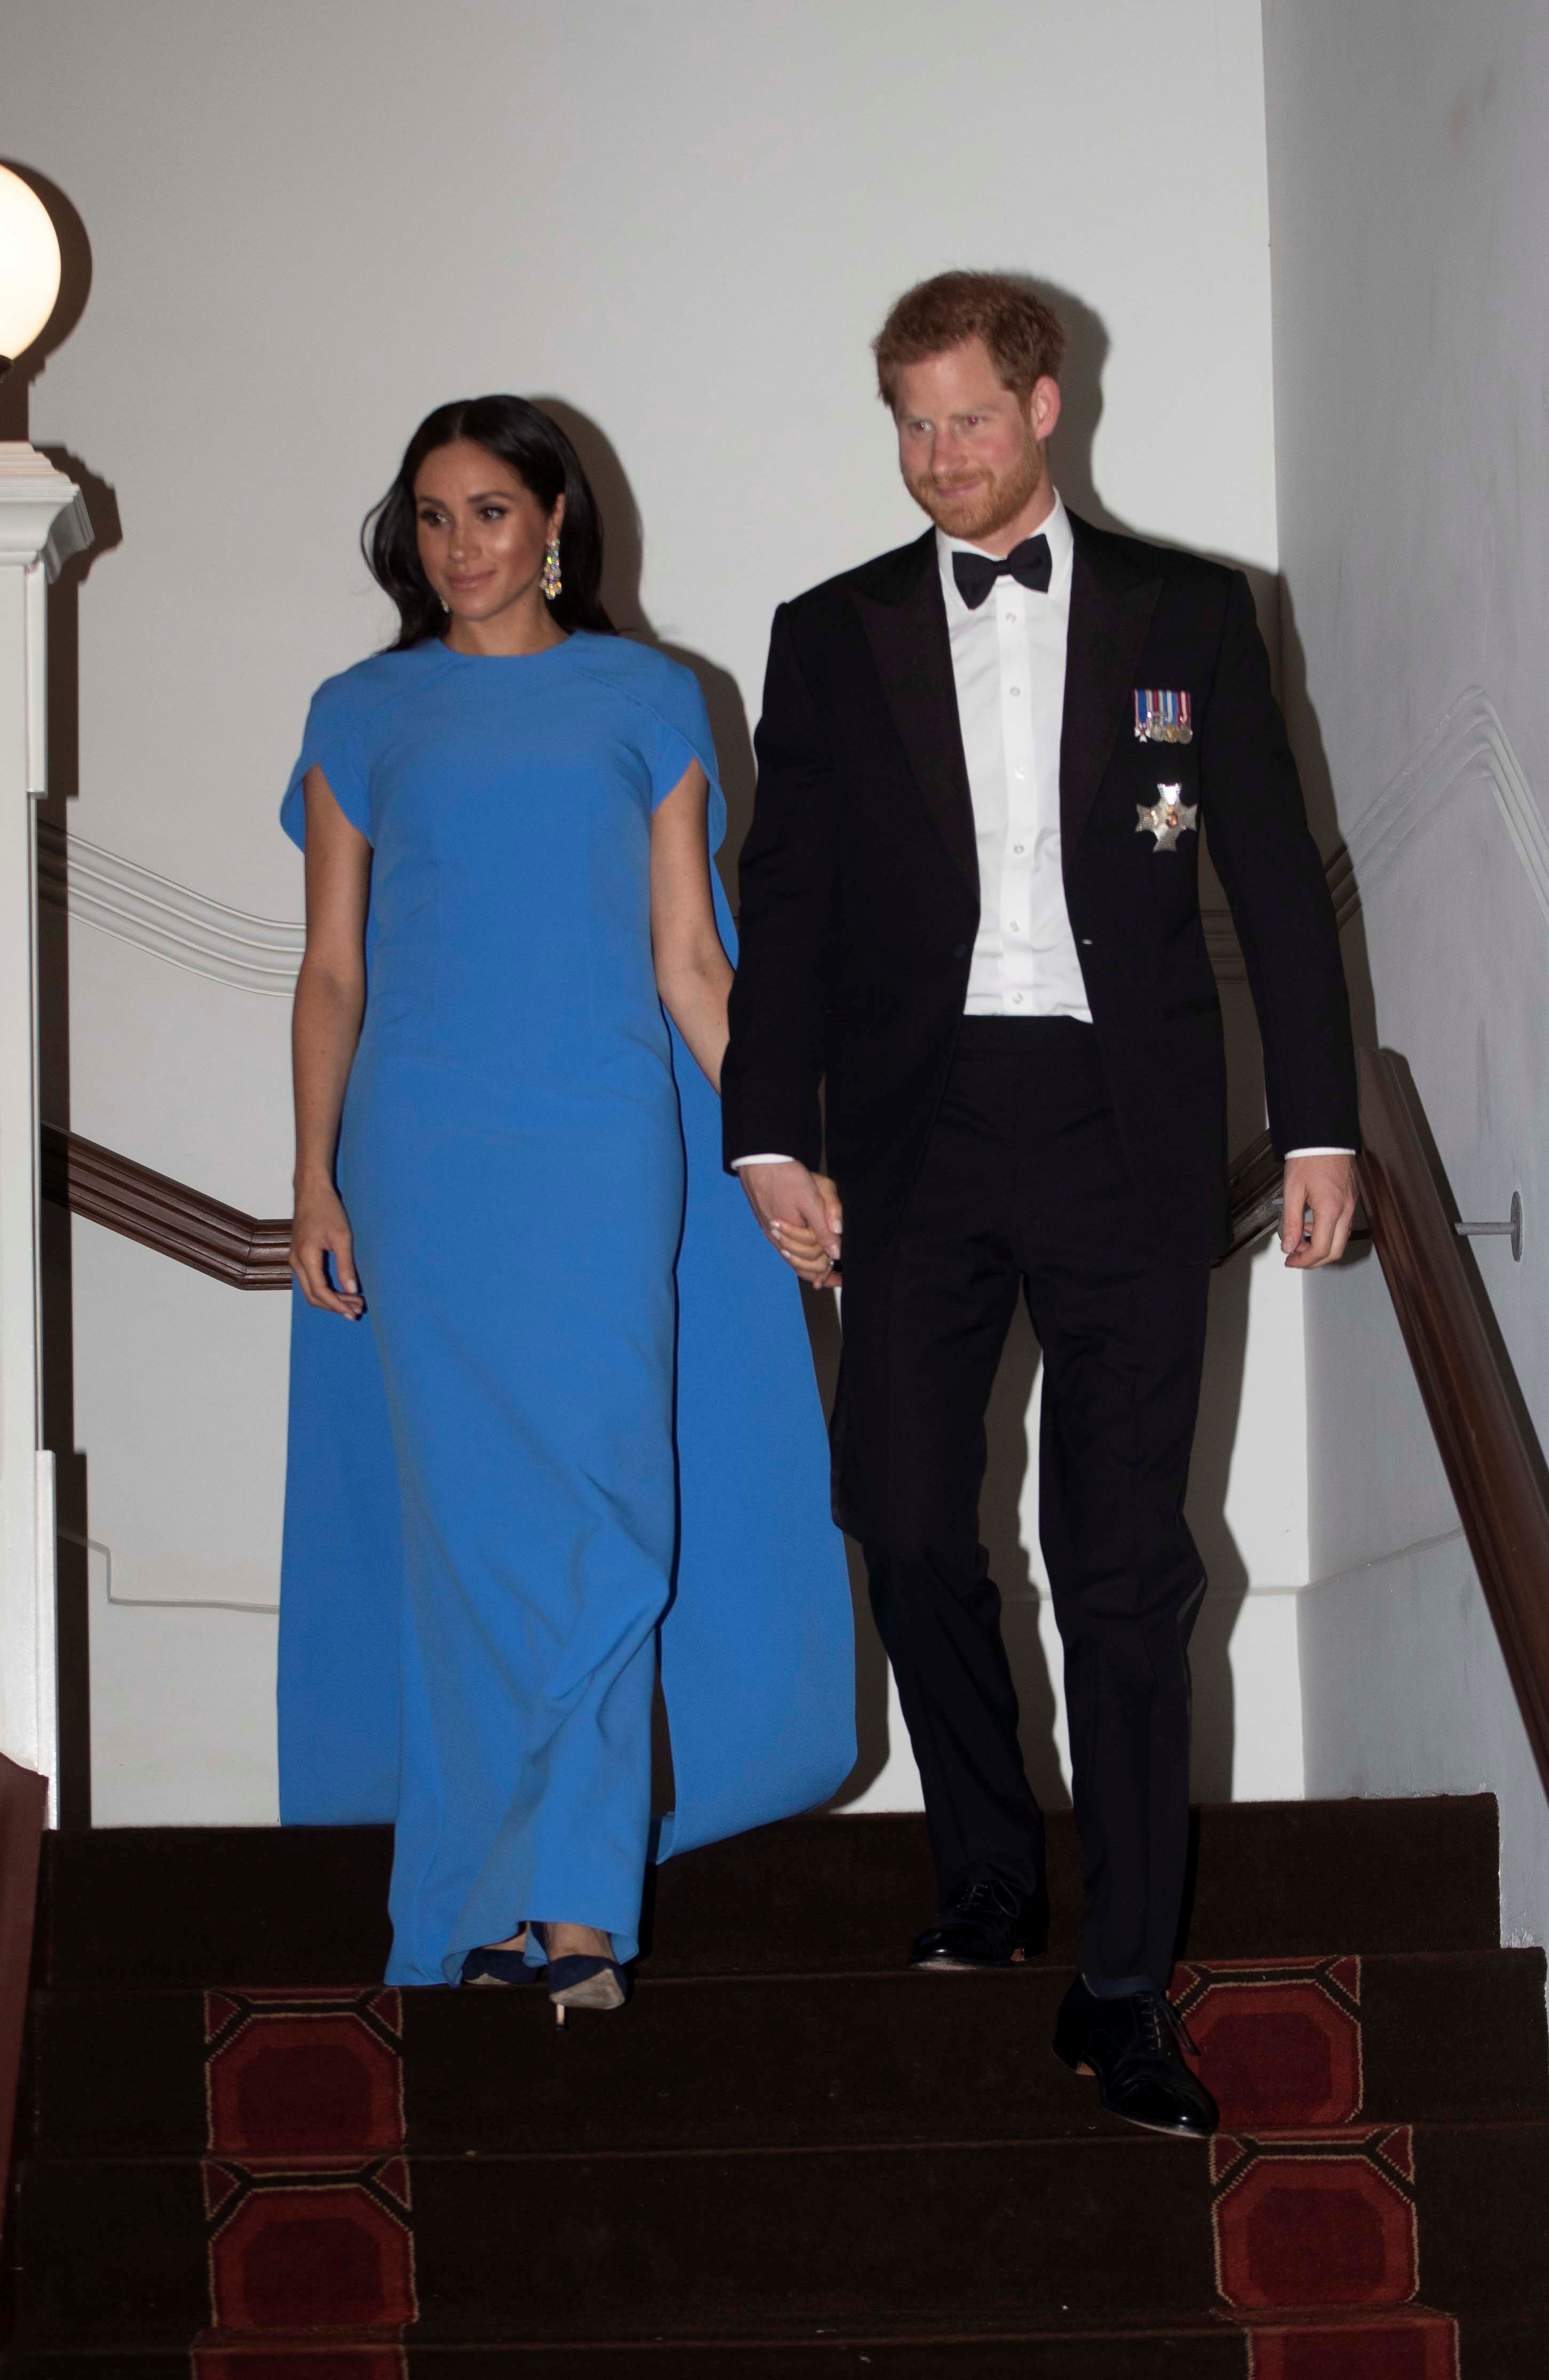 Prince Harry and Meghan, the Duchess of Sussex, arrive for a reception and state dinner at the Grand Pacific Hotel in Suva, F